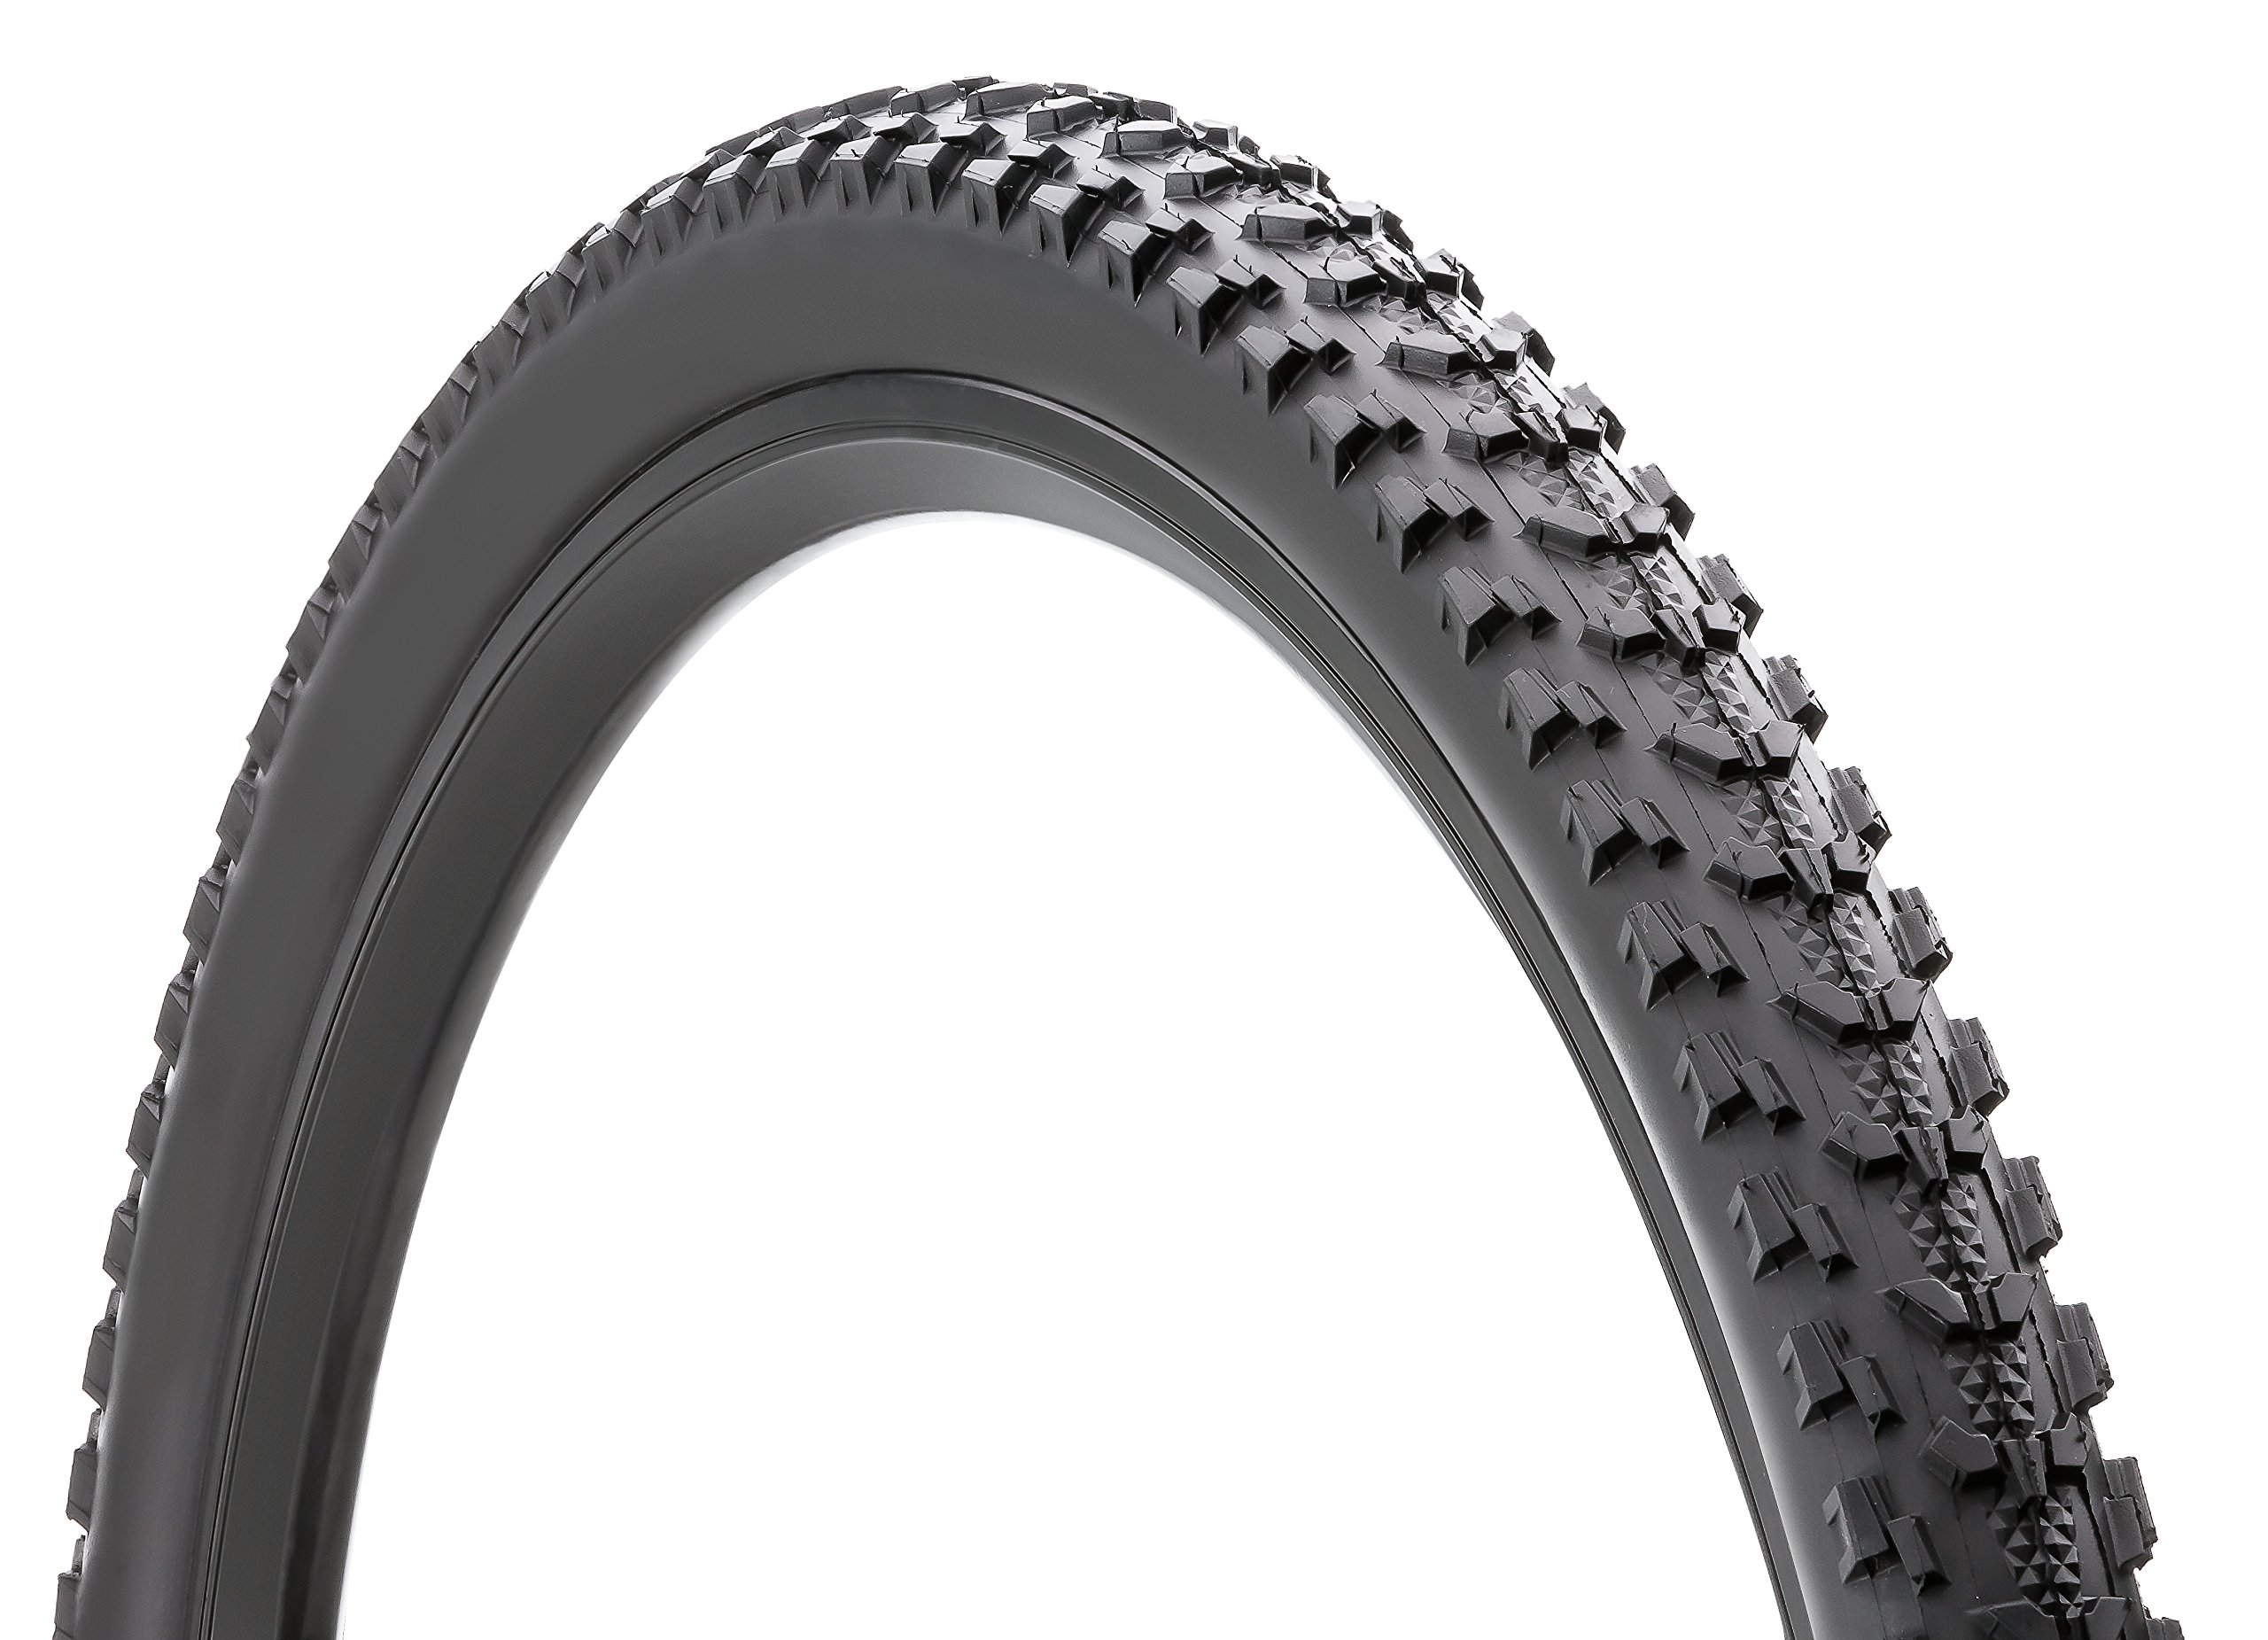 Schwinn Mountain Tire, 29 x 1.95-Inch